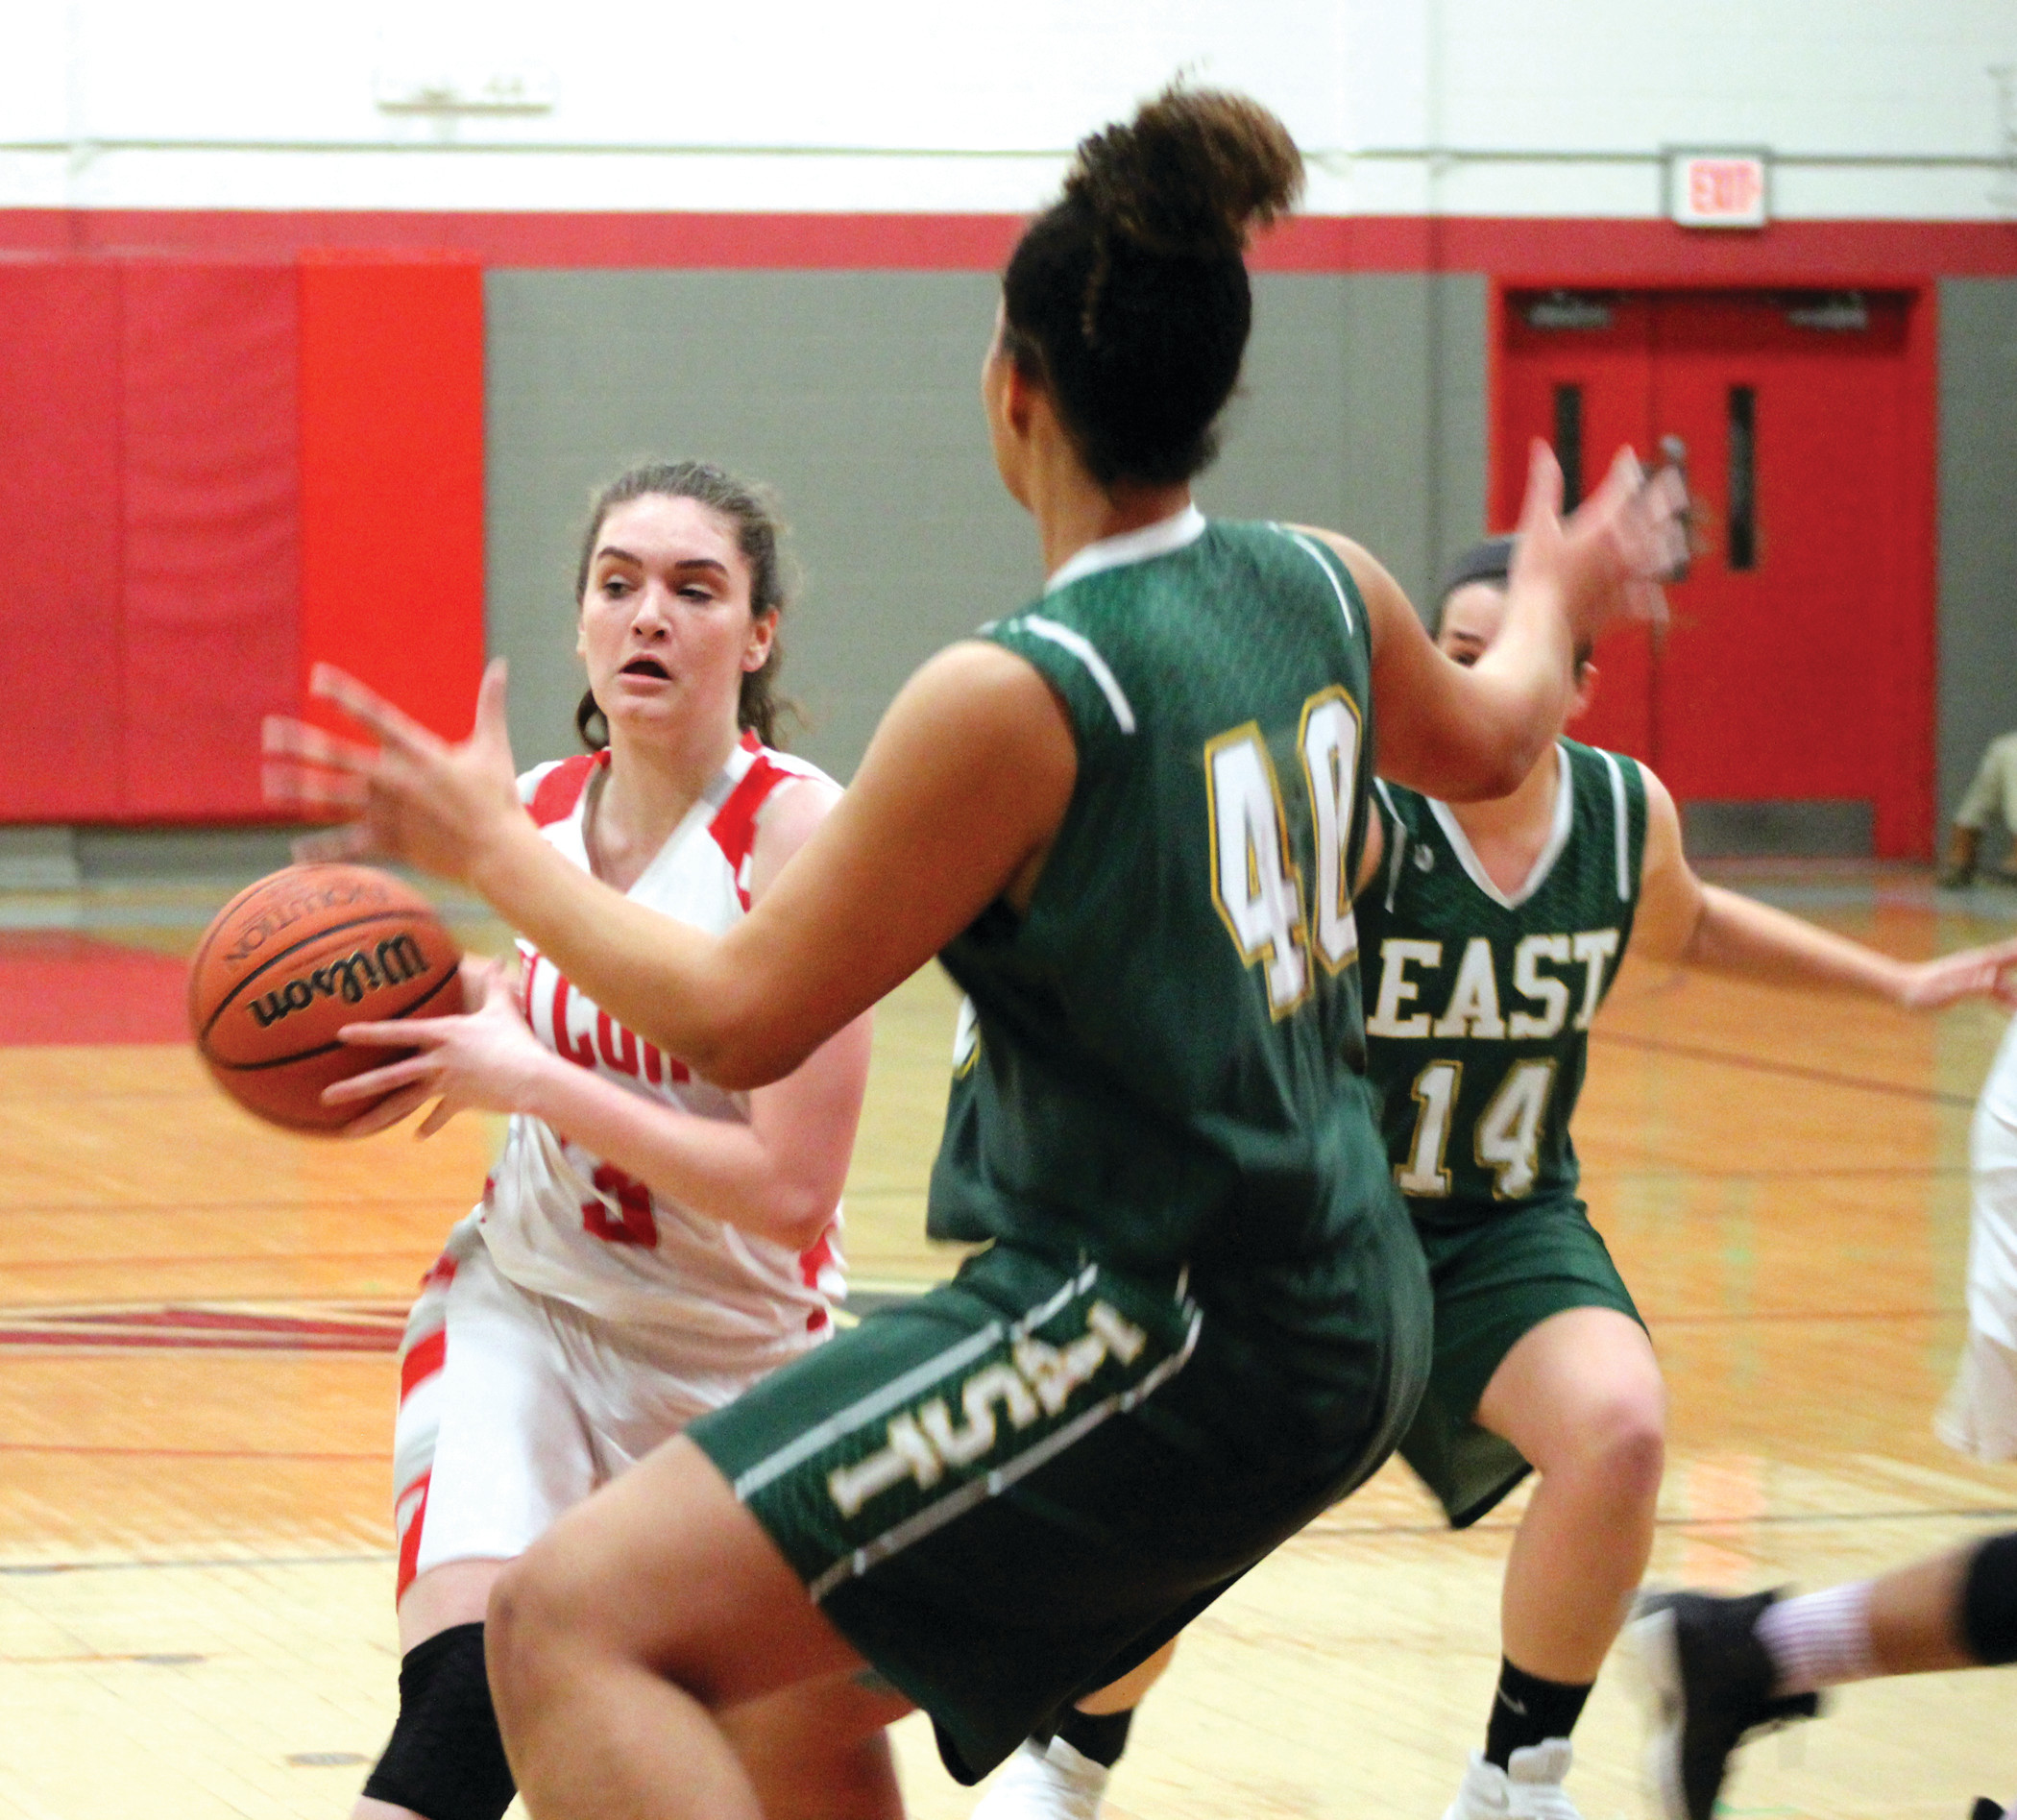 TALL TASK: West's Lauren Plociak drives to the basket against East center Maia Caito.